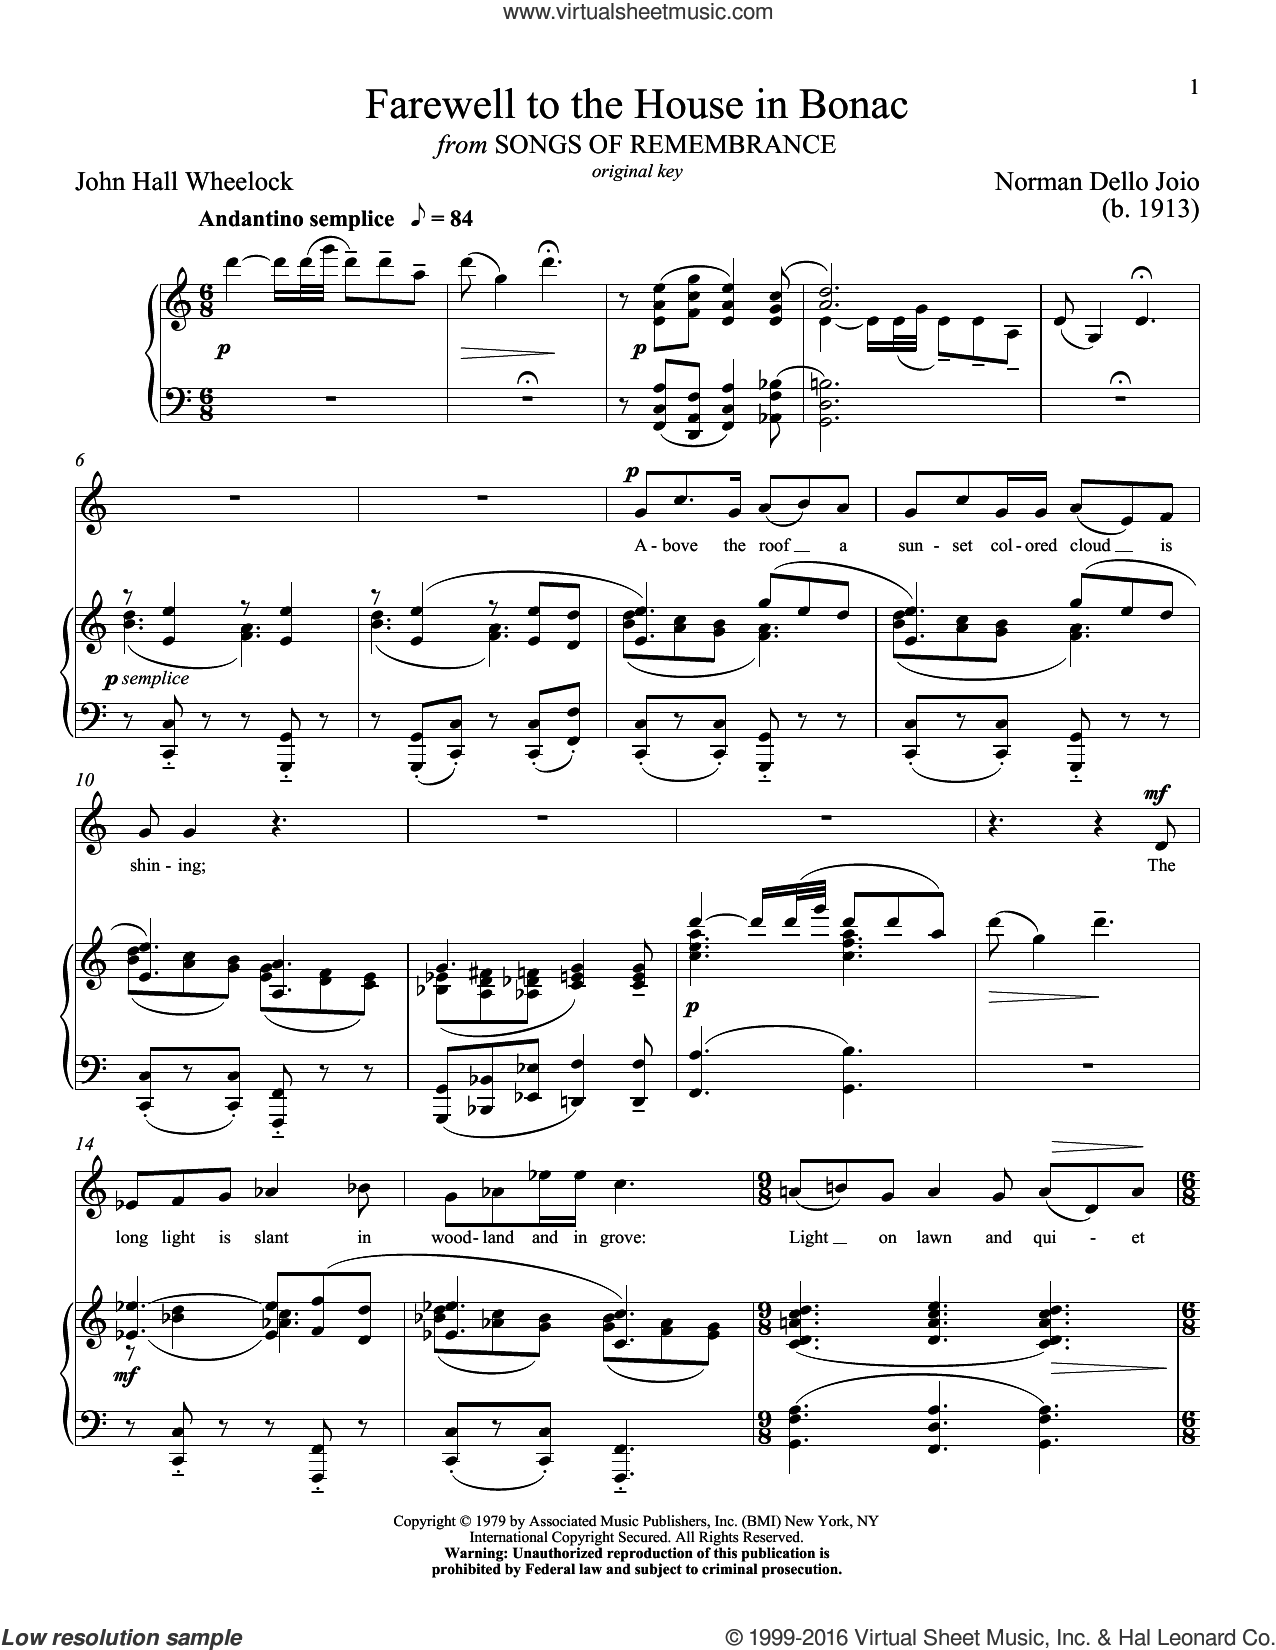 Farewell To The House In Bonac sheet music for voice and piano (Low ) by Norman Dello Joio, Richard Walters and John Hall Wheelock. Score Image Preview.